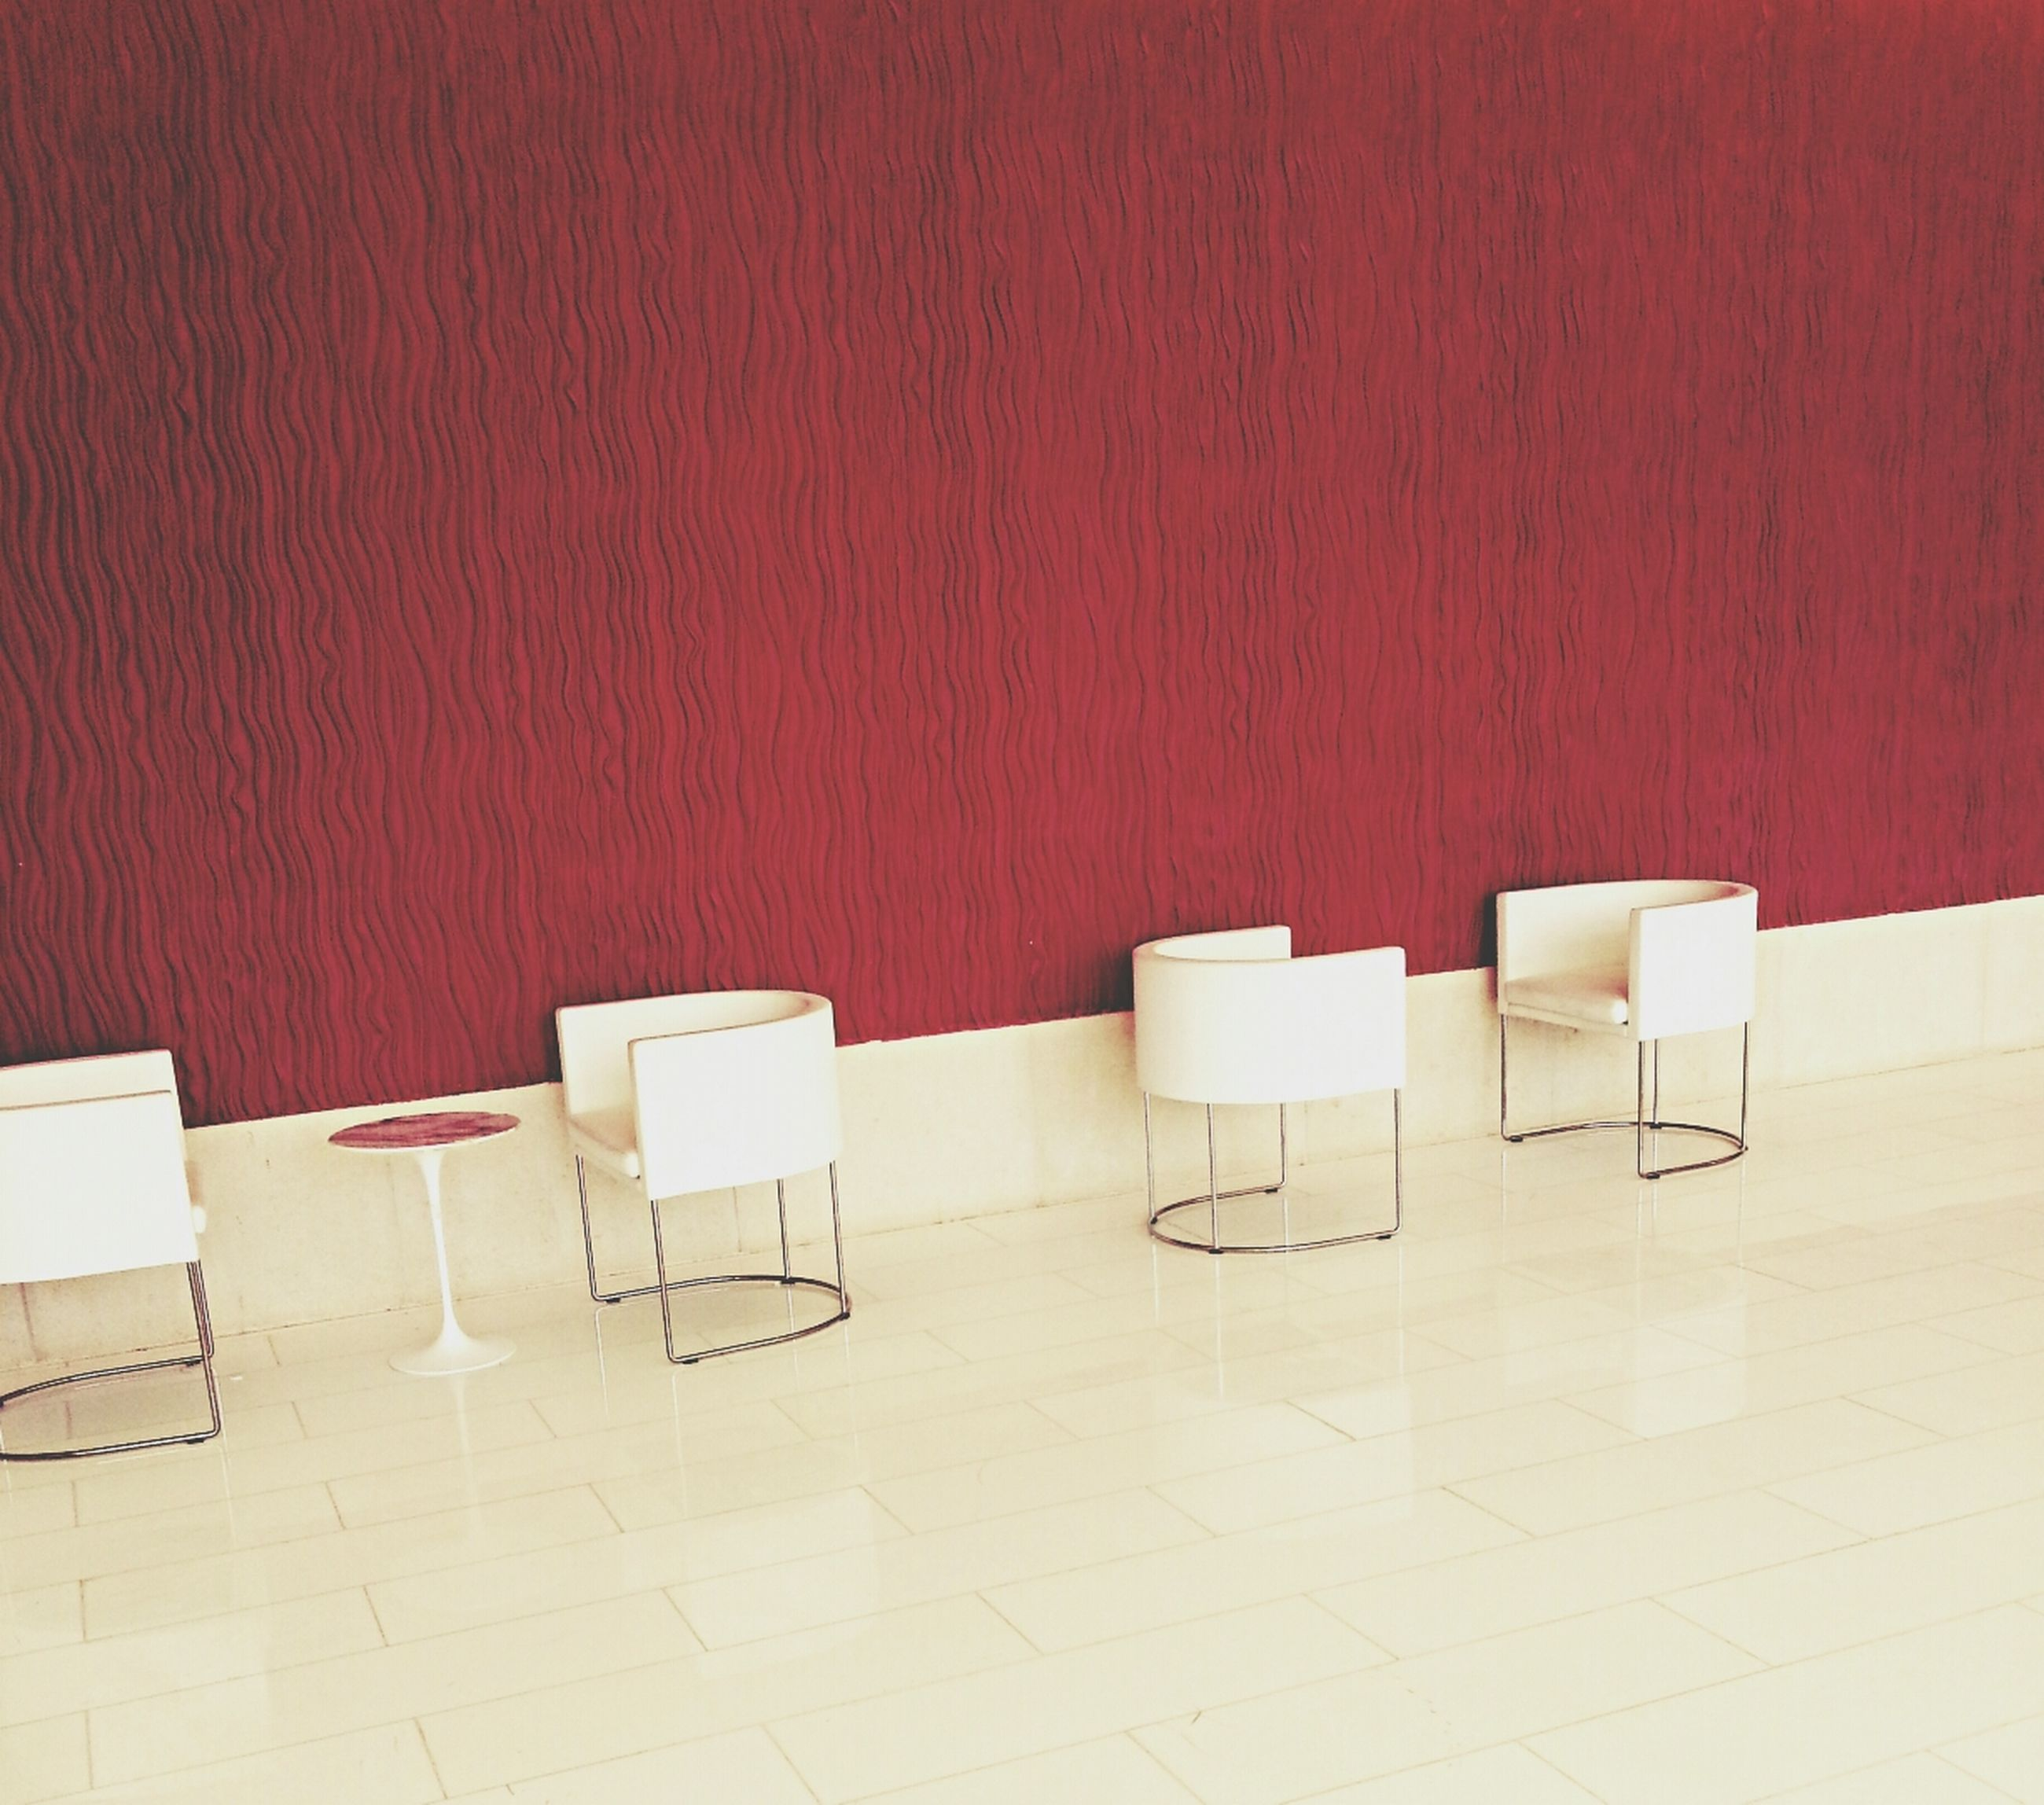 chair, empty, table, indoors, absence, wall - building feature, seat, wall, built structure, still life, architecture, red, tiled floor, furniture, no people, flooring, day, shadow, tile, side by side